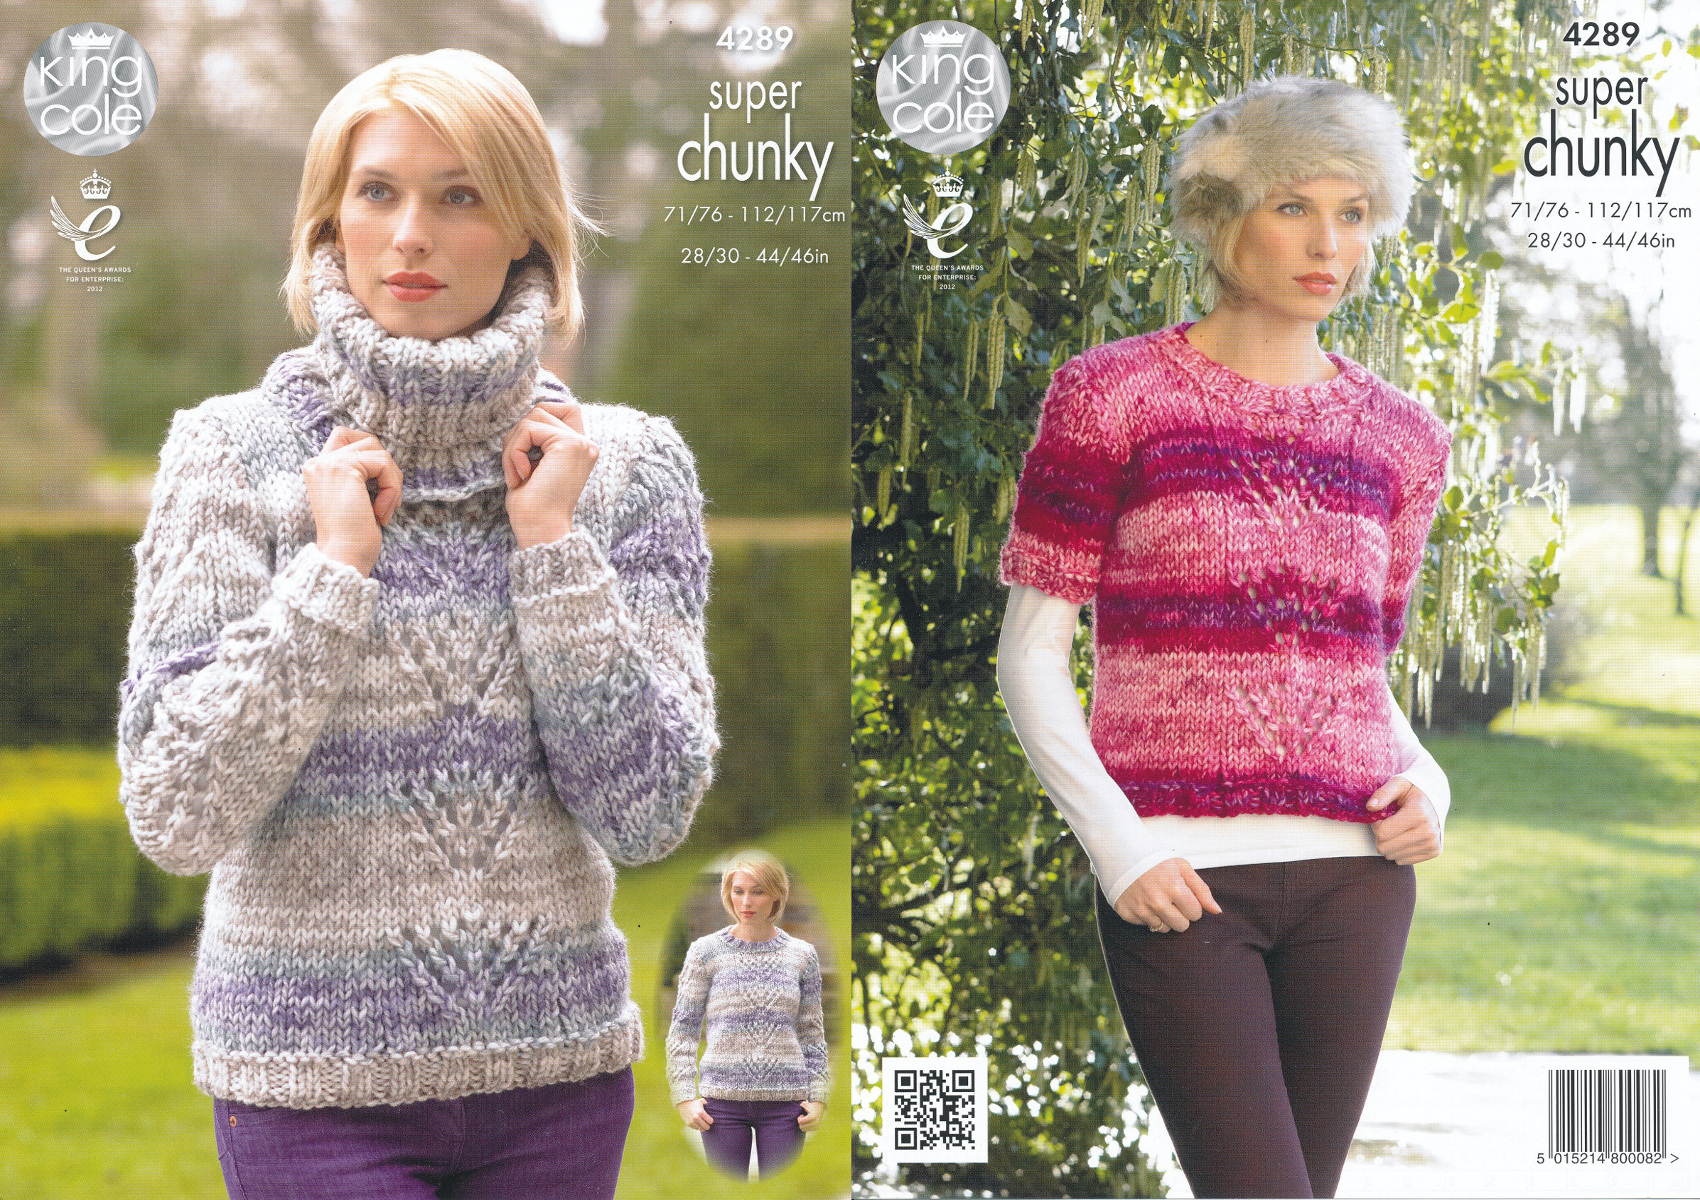 Ladies super chunky knitting pattern king cole lace effect jumpers item description this king cole super chunky knitting pattern bankloansurffo Gallery